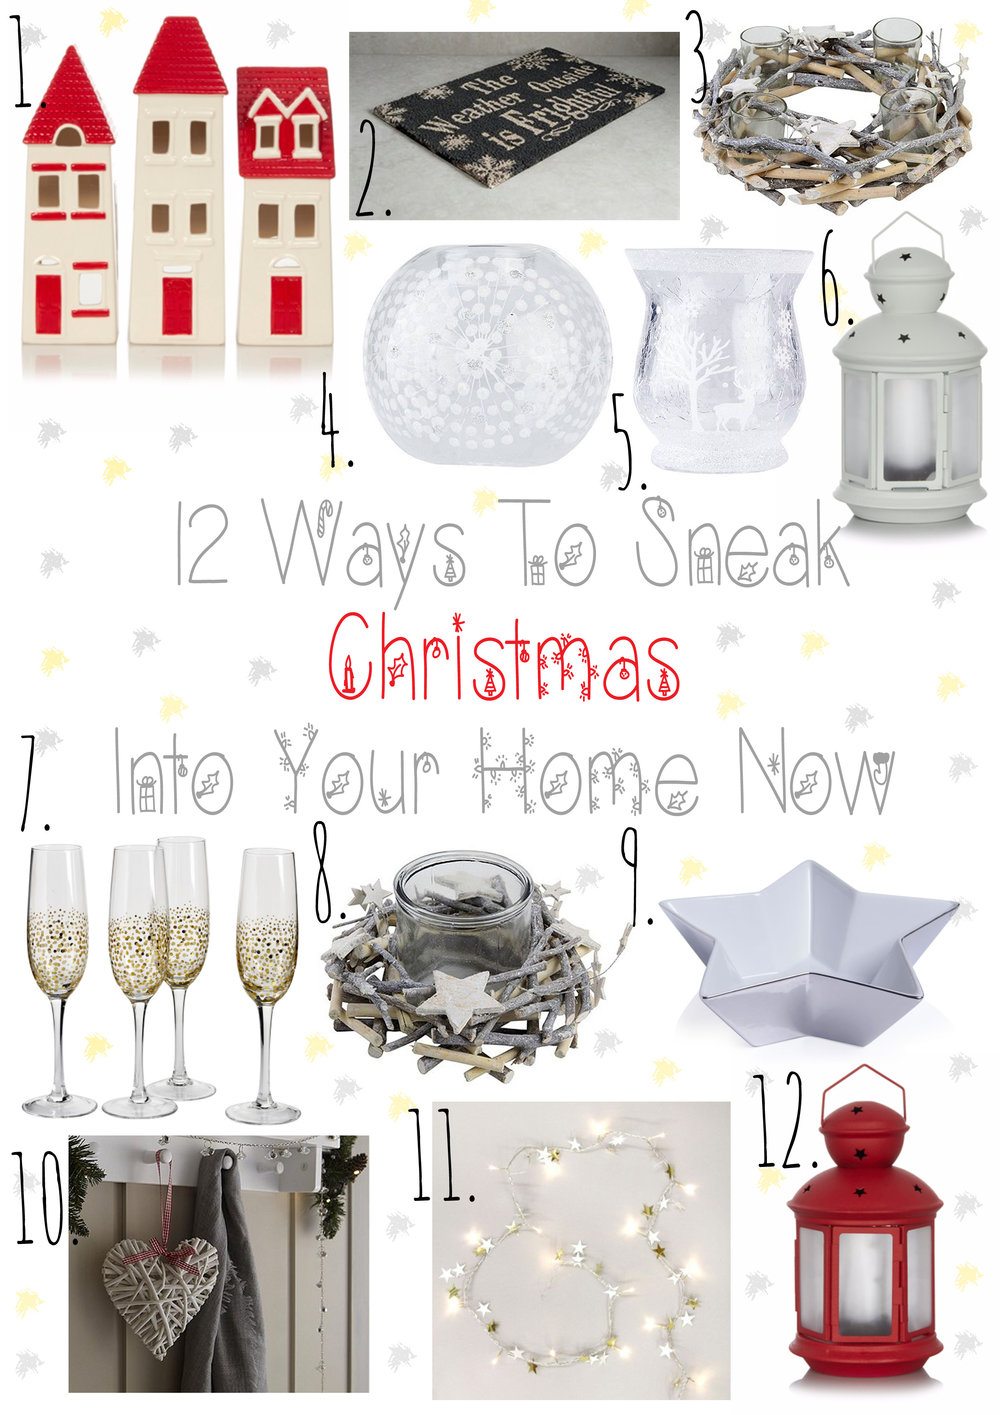 12 Ways To Sneak Christmas Into Your Home.